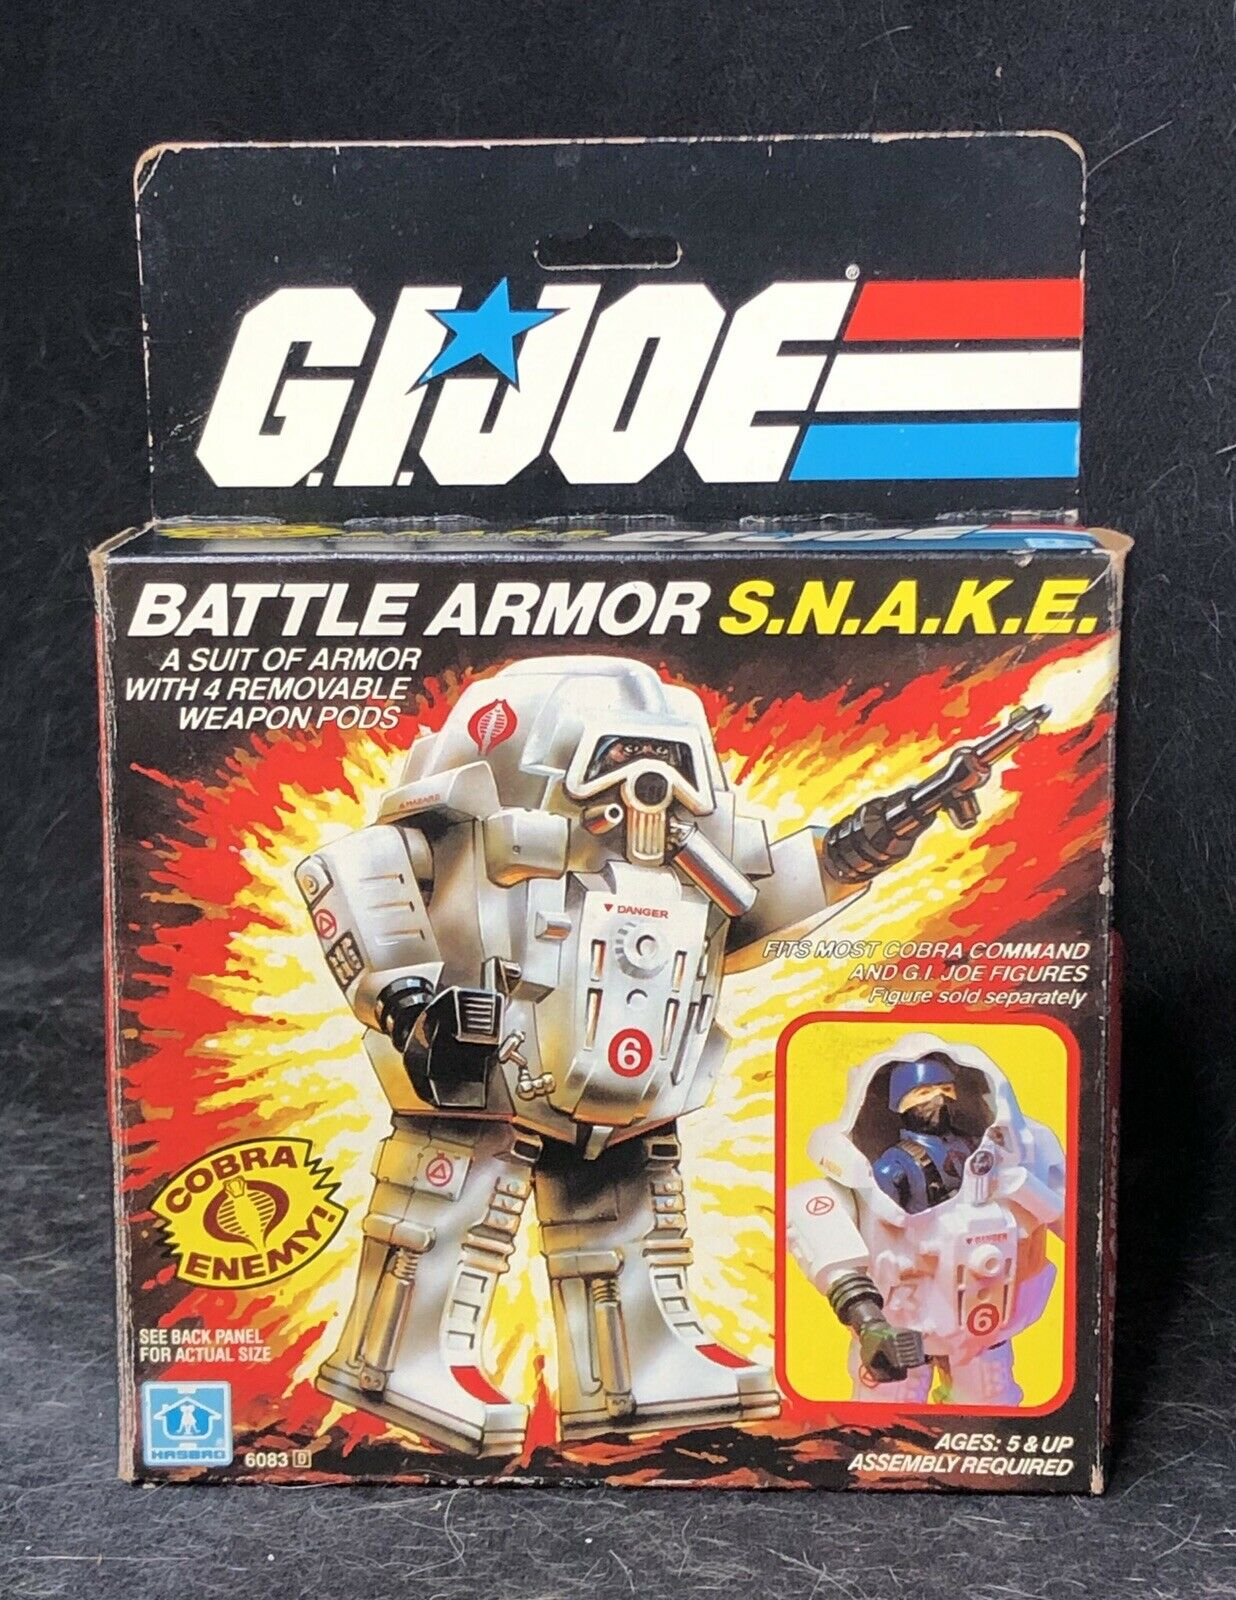 VTG 1983 GI Joe Battle Armor SNAKE